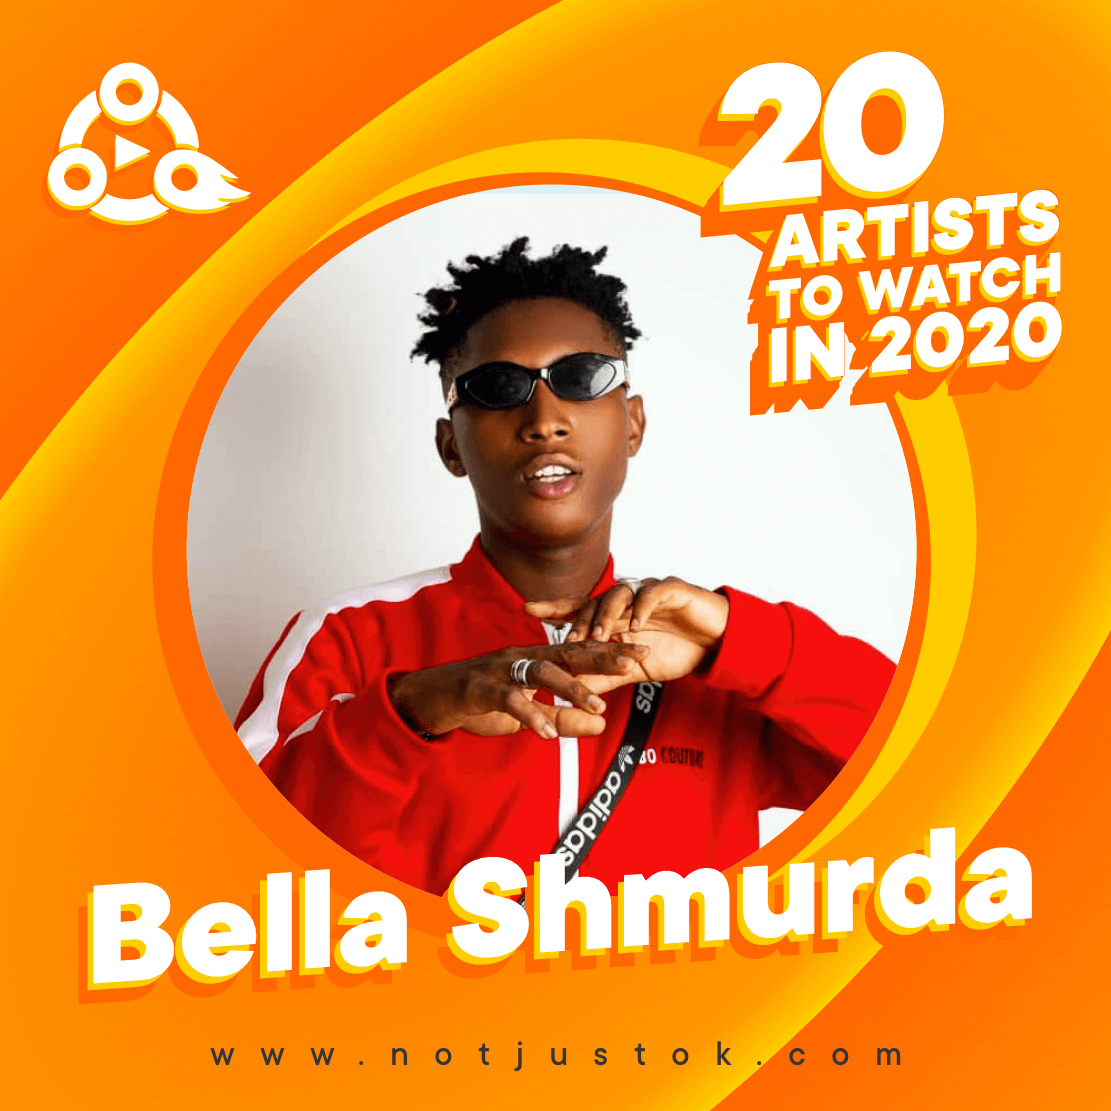 The 20 Artistes To Watch In 2020 - Bella Shmurda